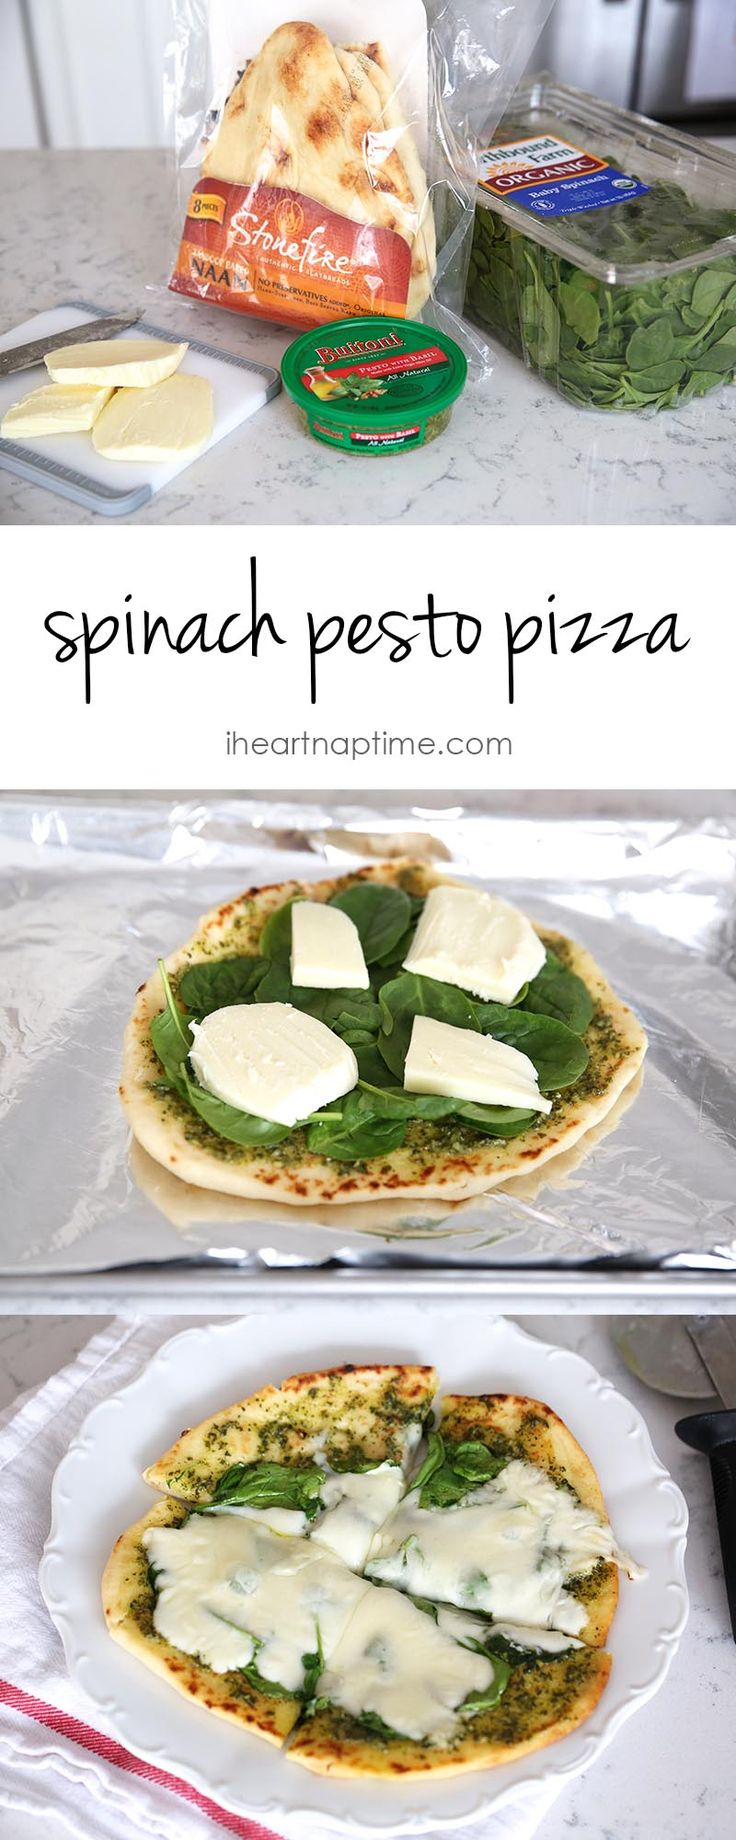 Spinach pesto pizza recipe -only 4 ingredients to make!